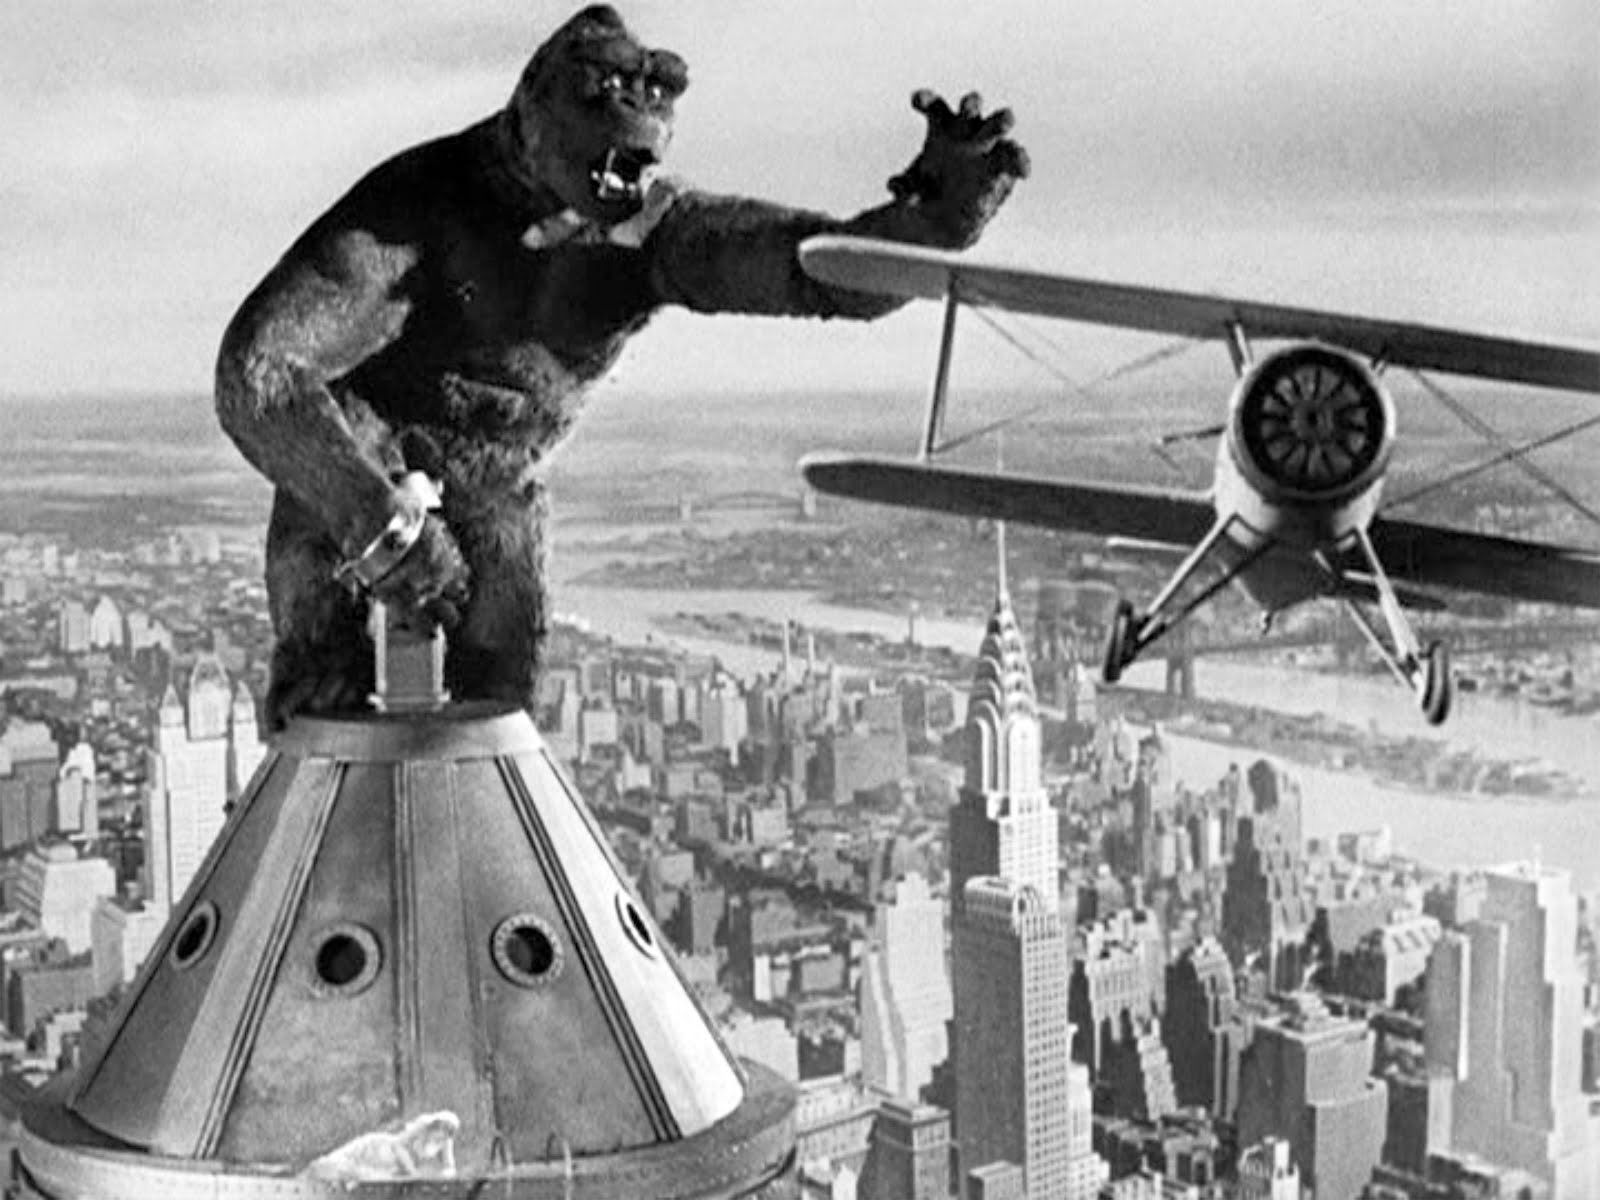 041-AFI-Top-100-king-kong-classic-movie-review-fay-wray-monster-sci-fi-1933-01.jpg